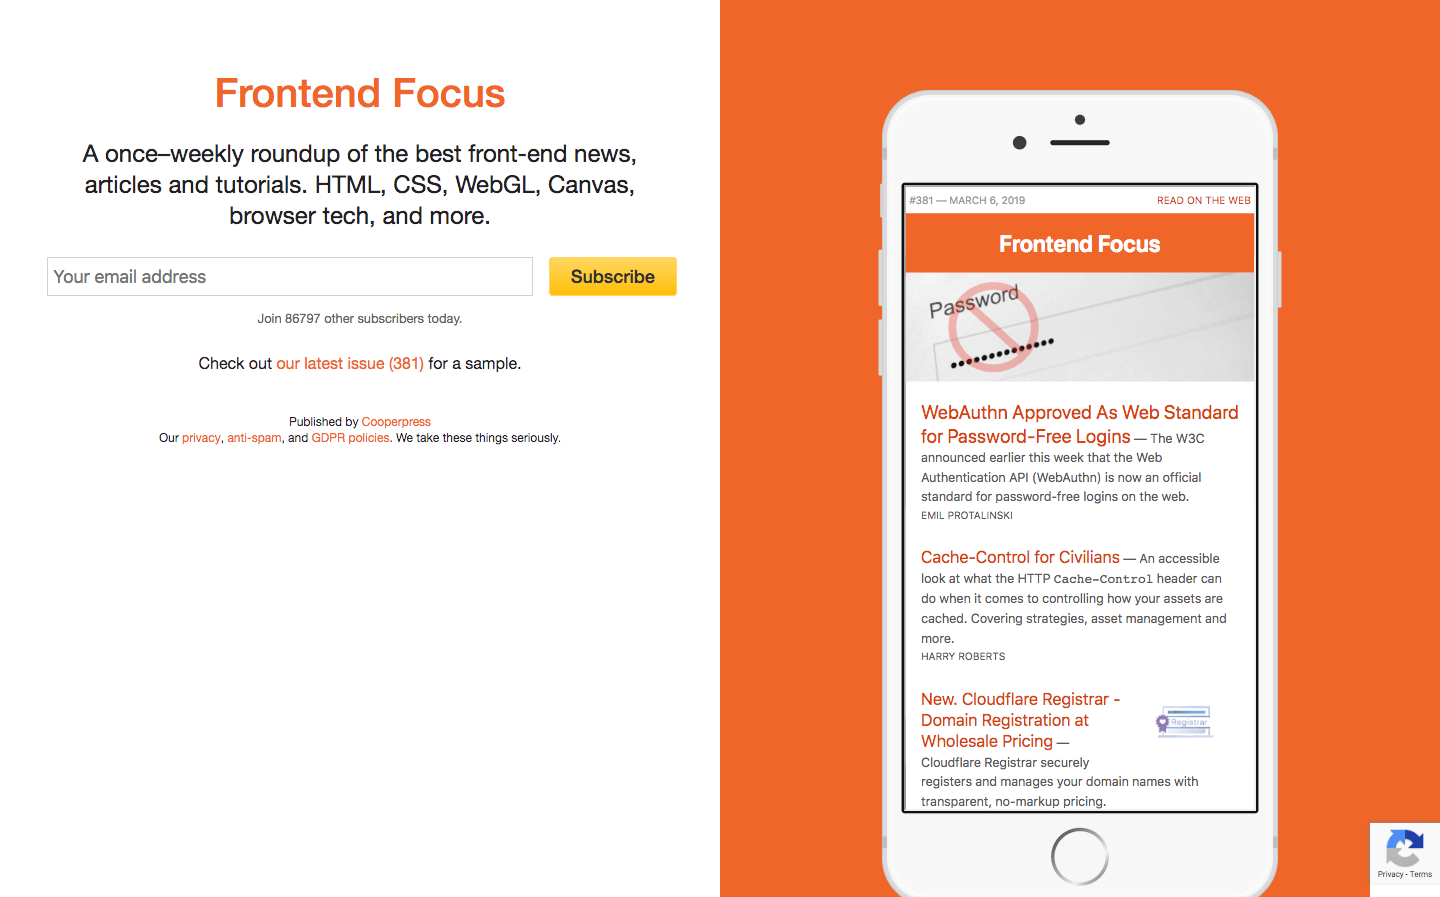 Frontend Focus homepage